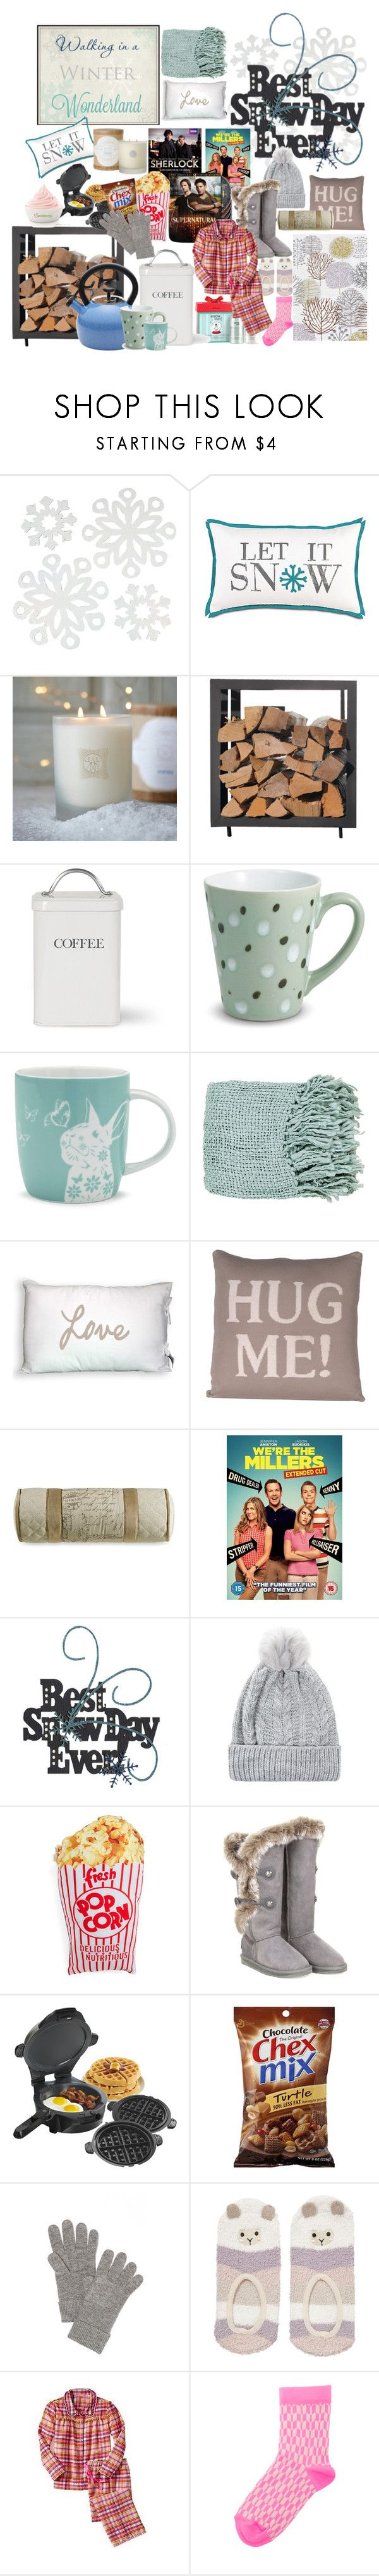 """""""Snowday"""" by bamaannie ❤ liked on Polyvore featuring WALL, Linnea, Paula Deen, Sur La Table, Surya, DCI, Australia Luxe Collective, Hamilton Beach, rag & bone and Disney"""